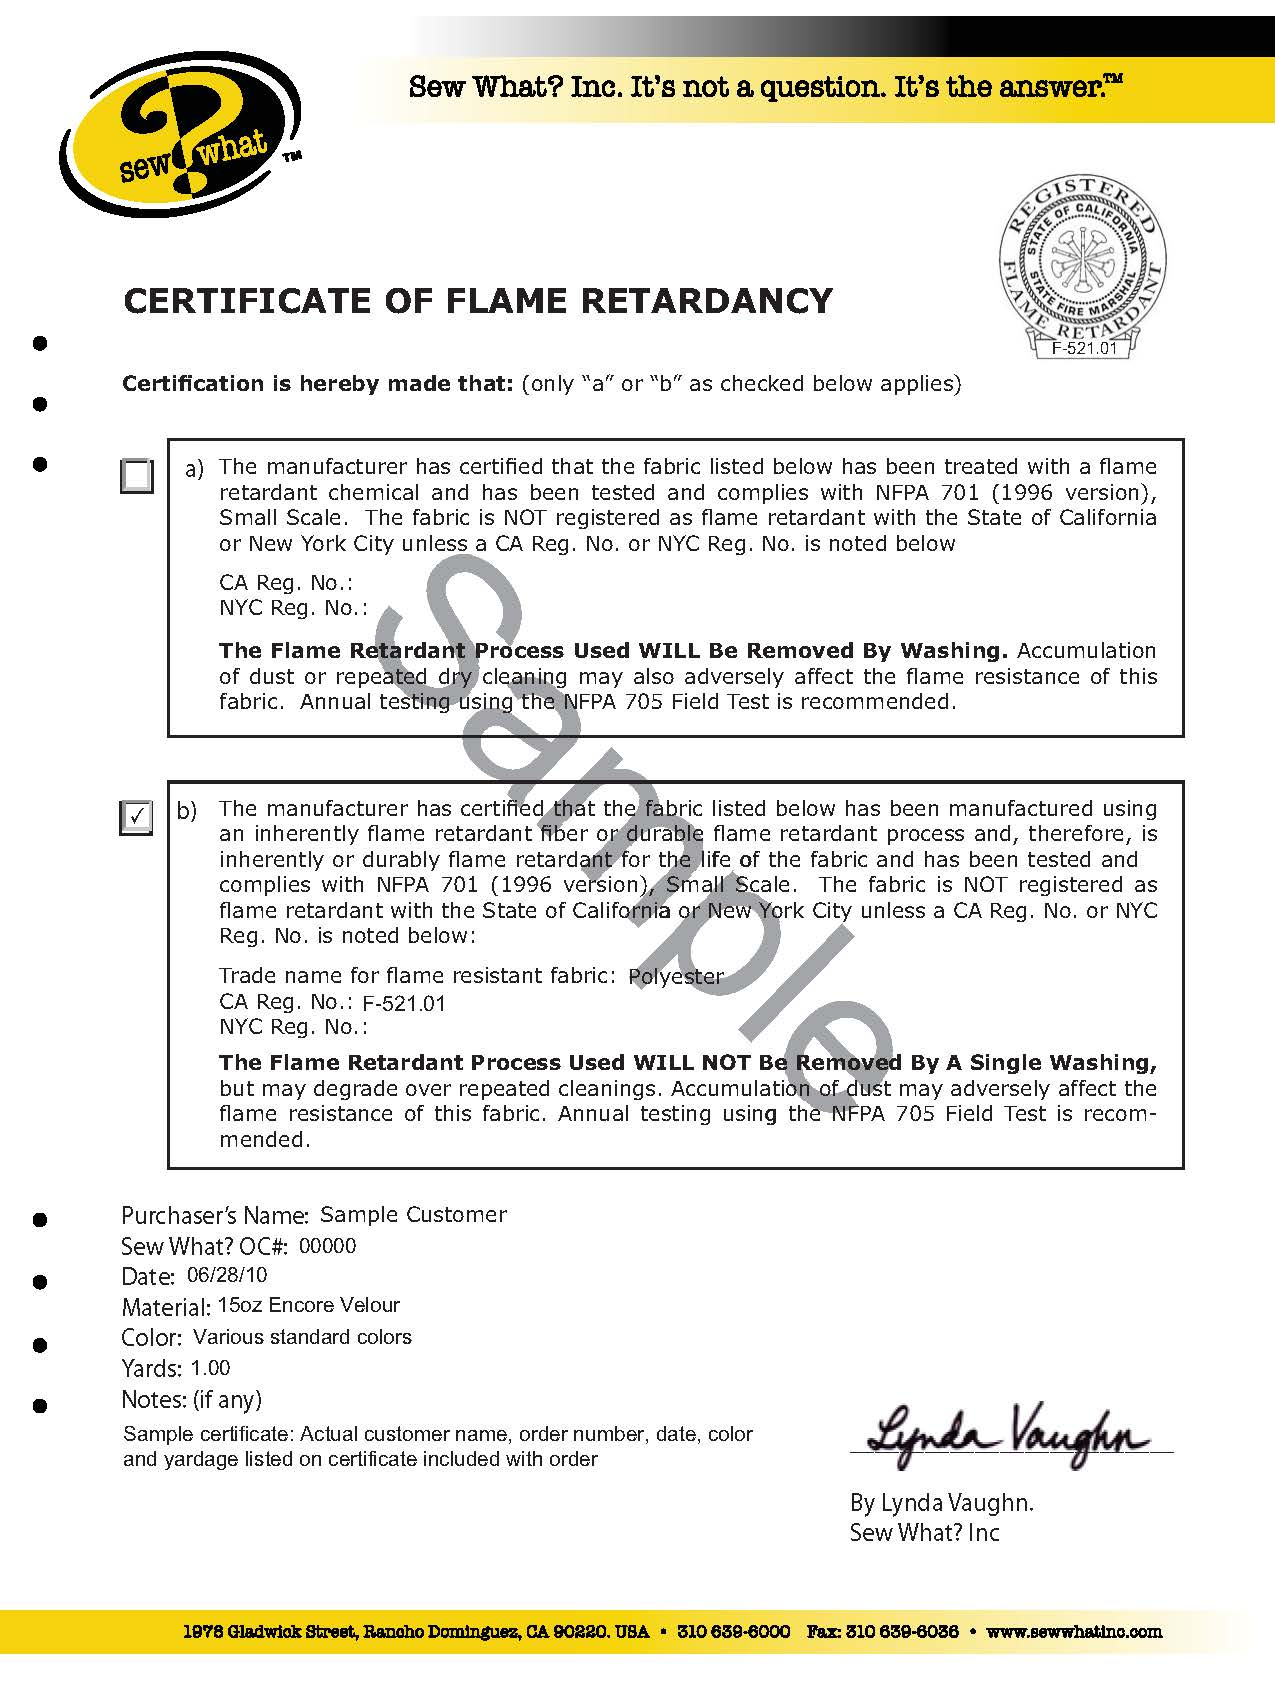 The basics of fabric flammability and flame retardancy sew what certification of flame retardancy 1betcityfo Gallery